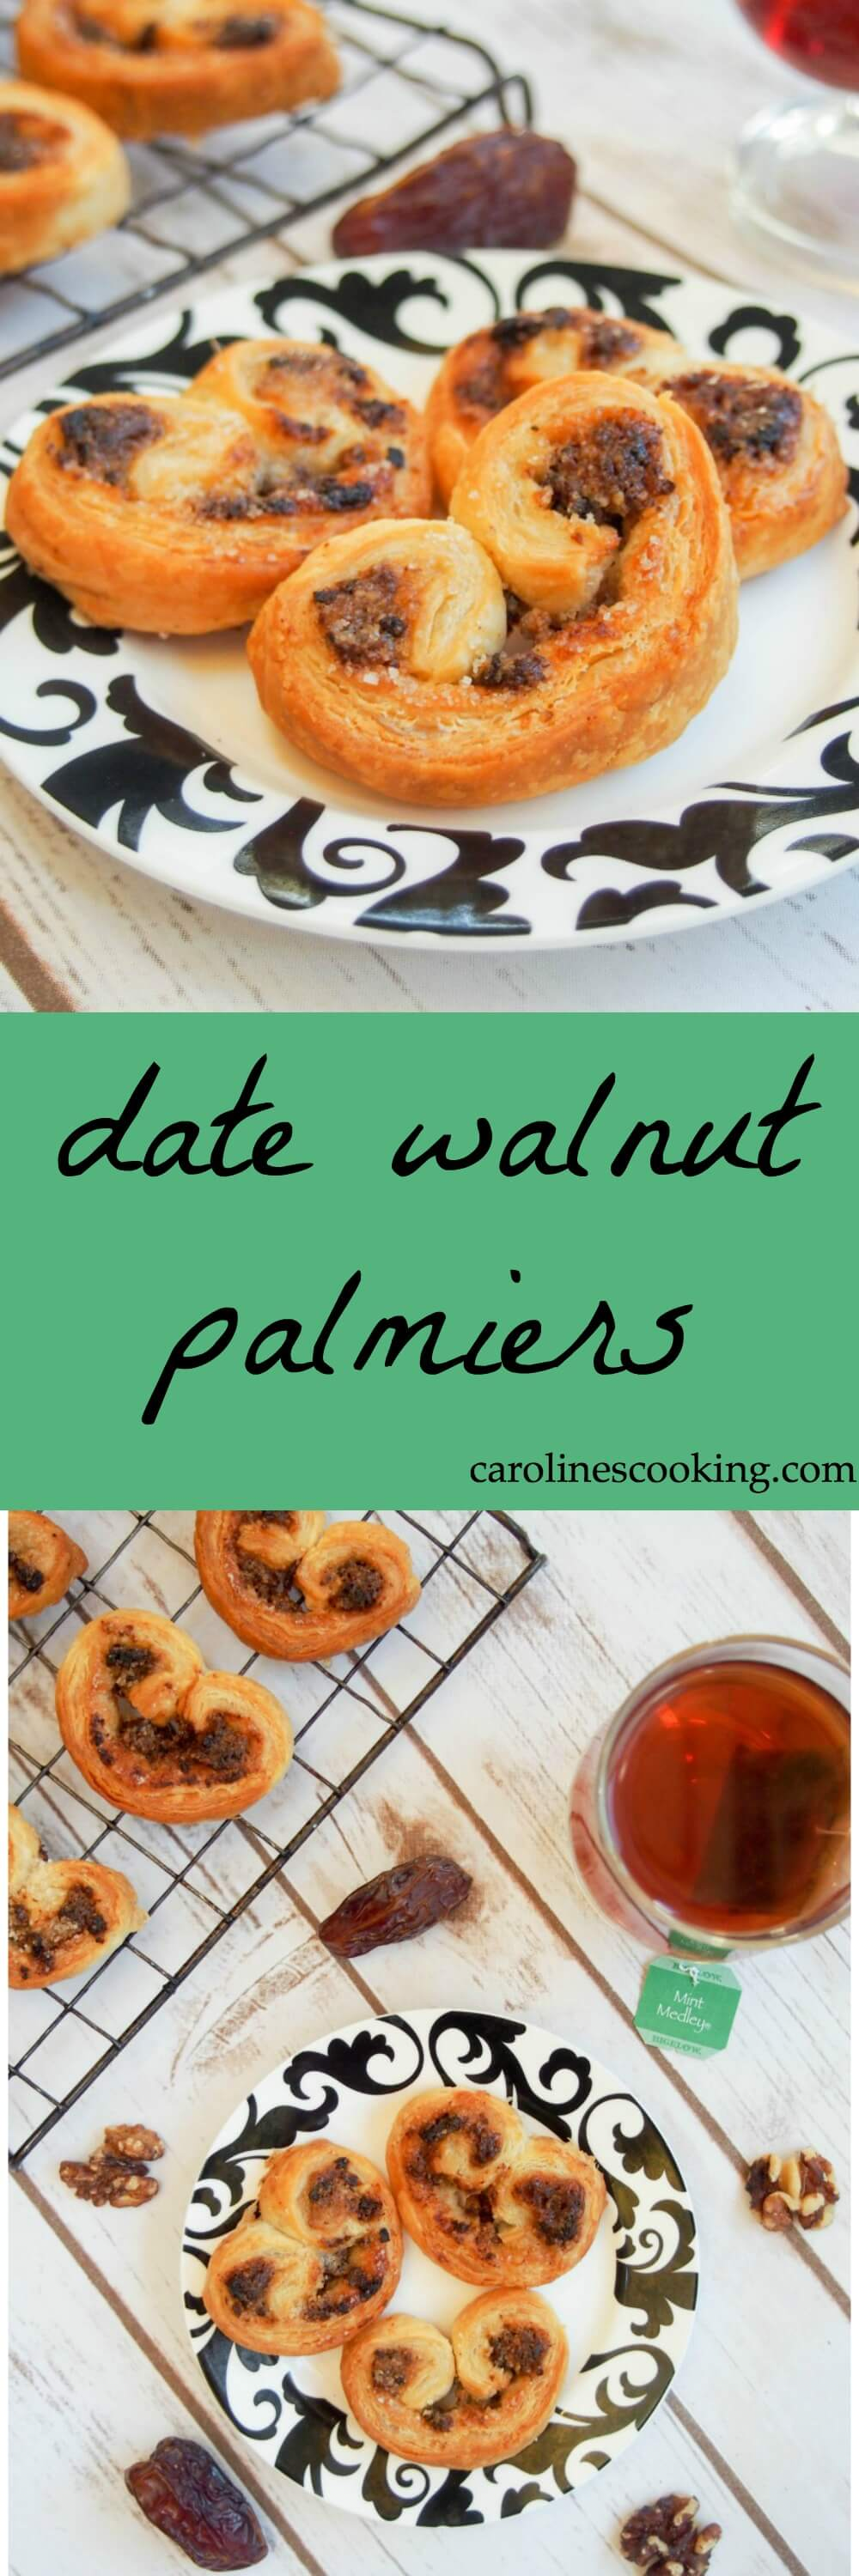 These date walnut palmiers have only 4 ingredients and take no time to make. Low on sugar but full of delicious flavor. A perfect tea-time snack. Plus video tutorial! AD #TeaProudly